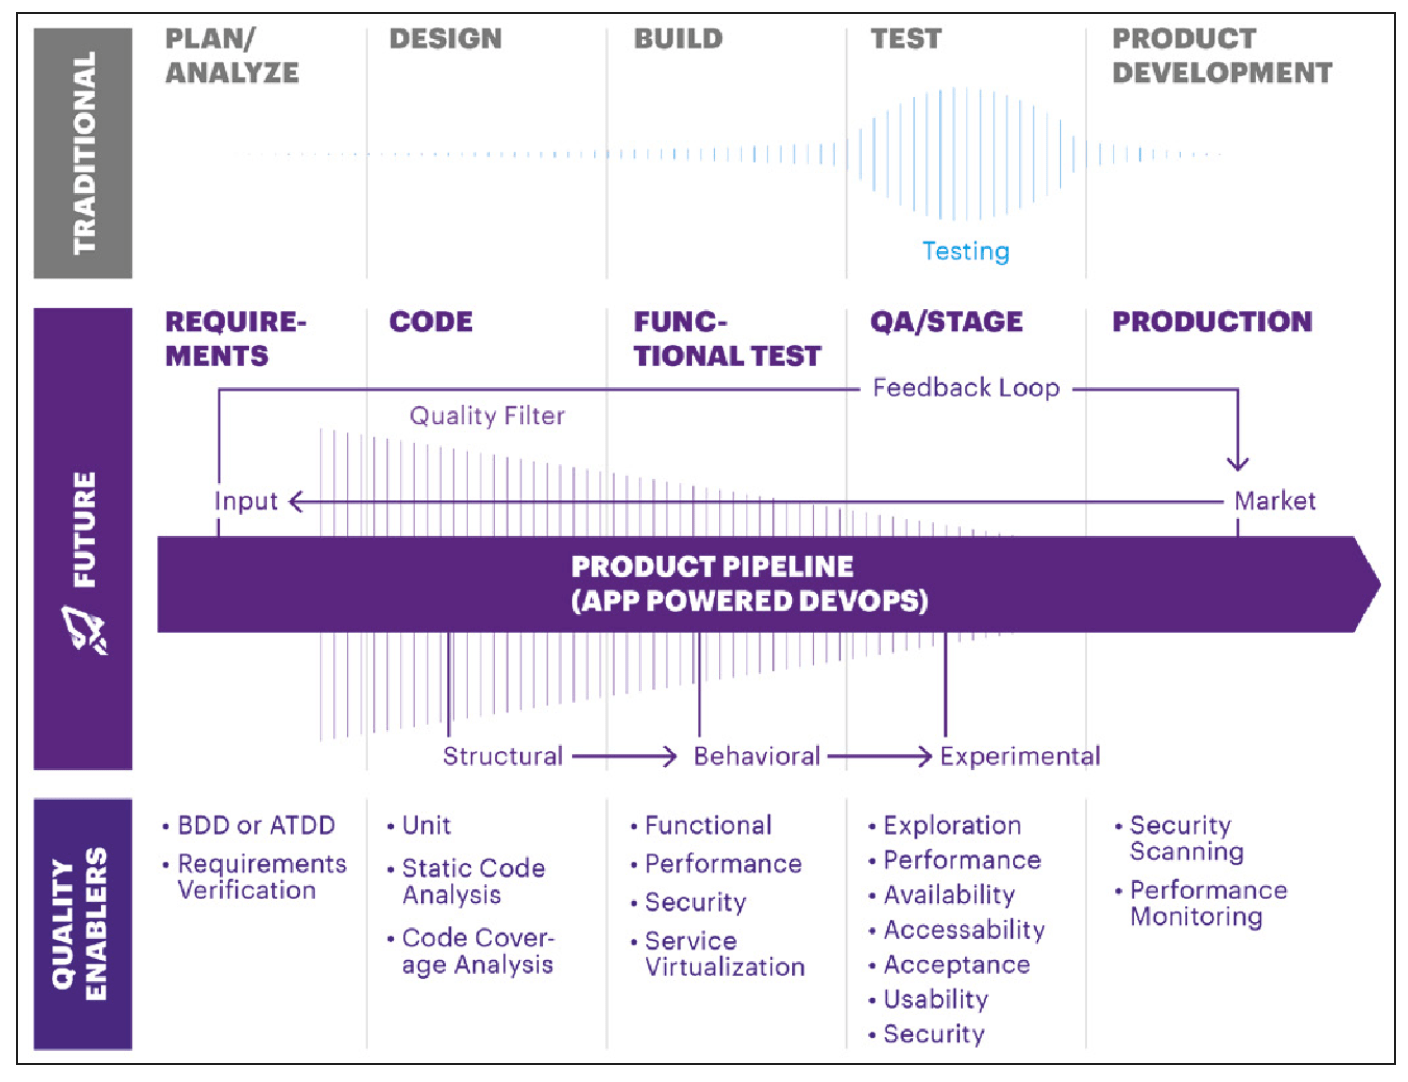 Image 1: An automated product pipeline is the core of the quality funnel and an essential lever for reducing transaction costs